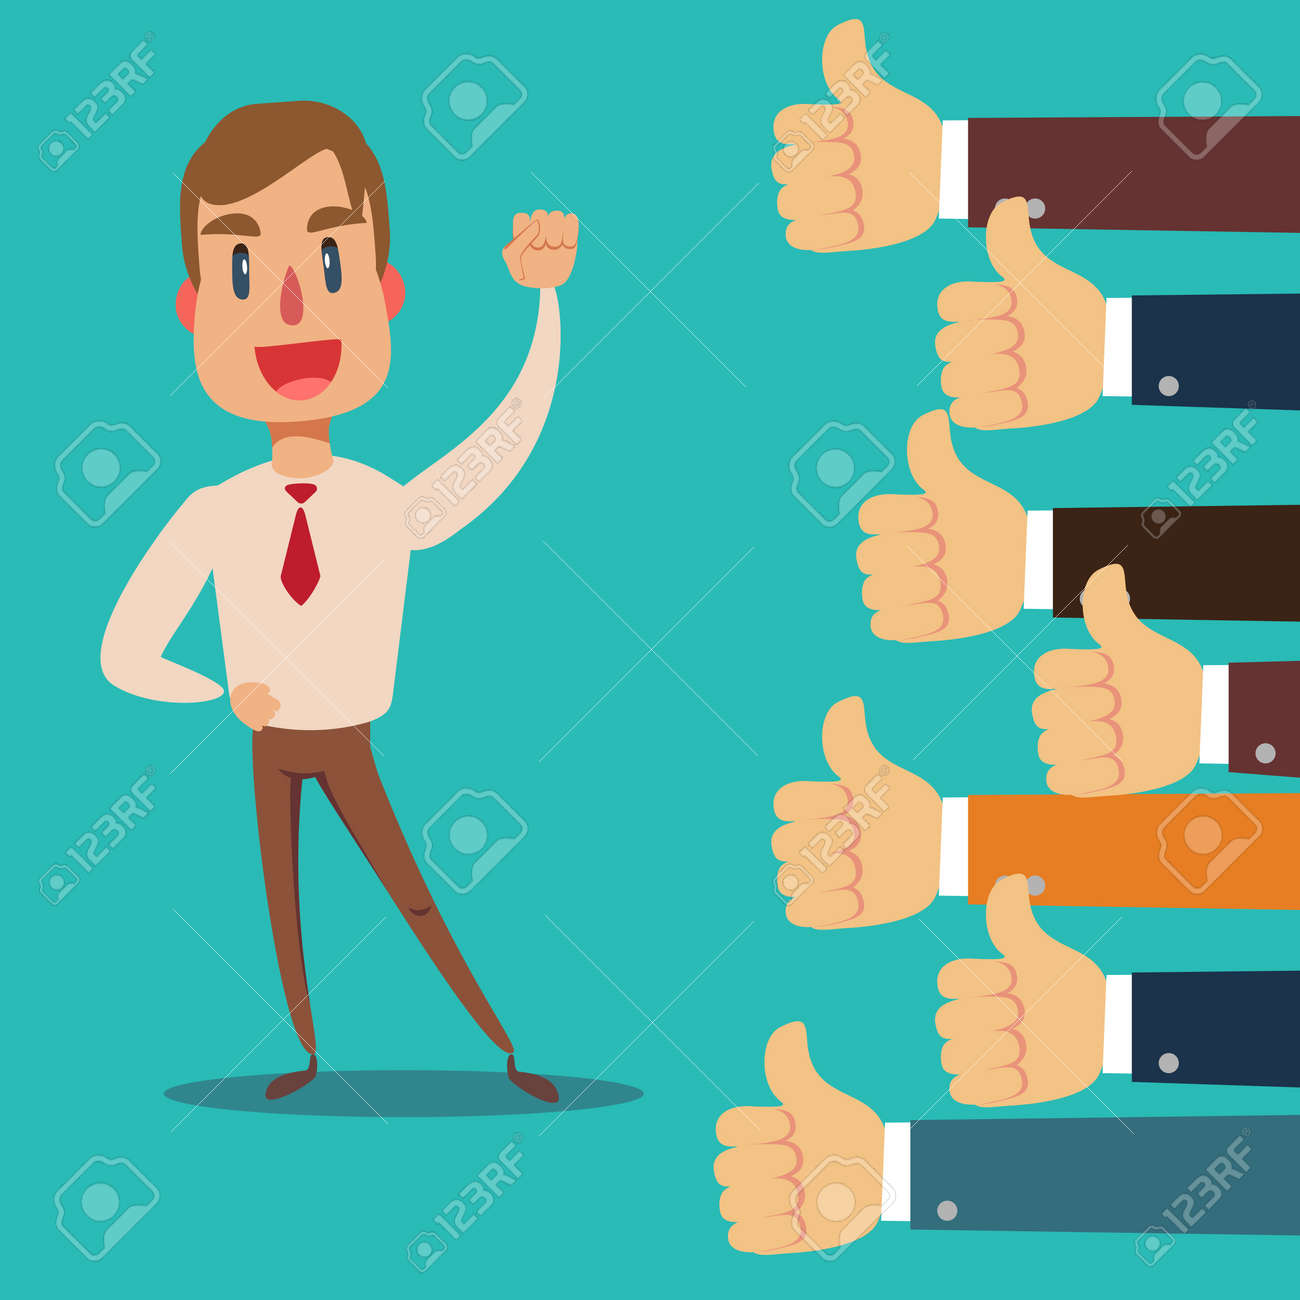 Happy and proud businessman with many thumbs up hands around him. - 142193746